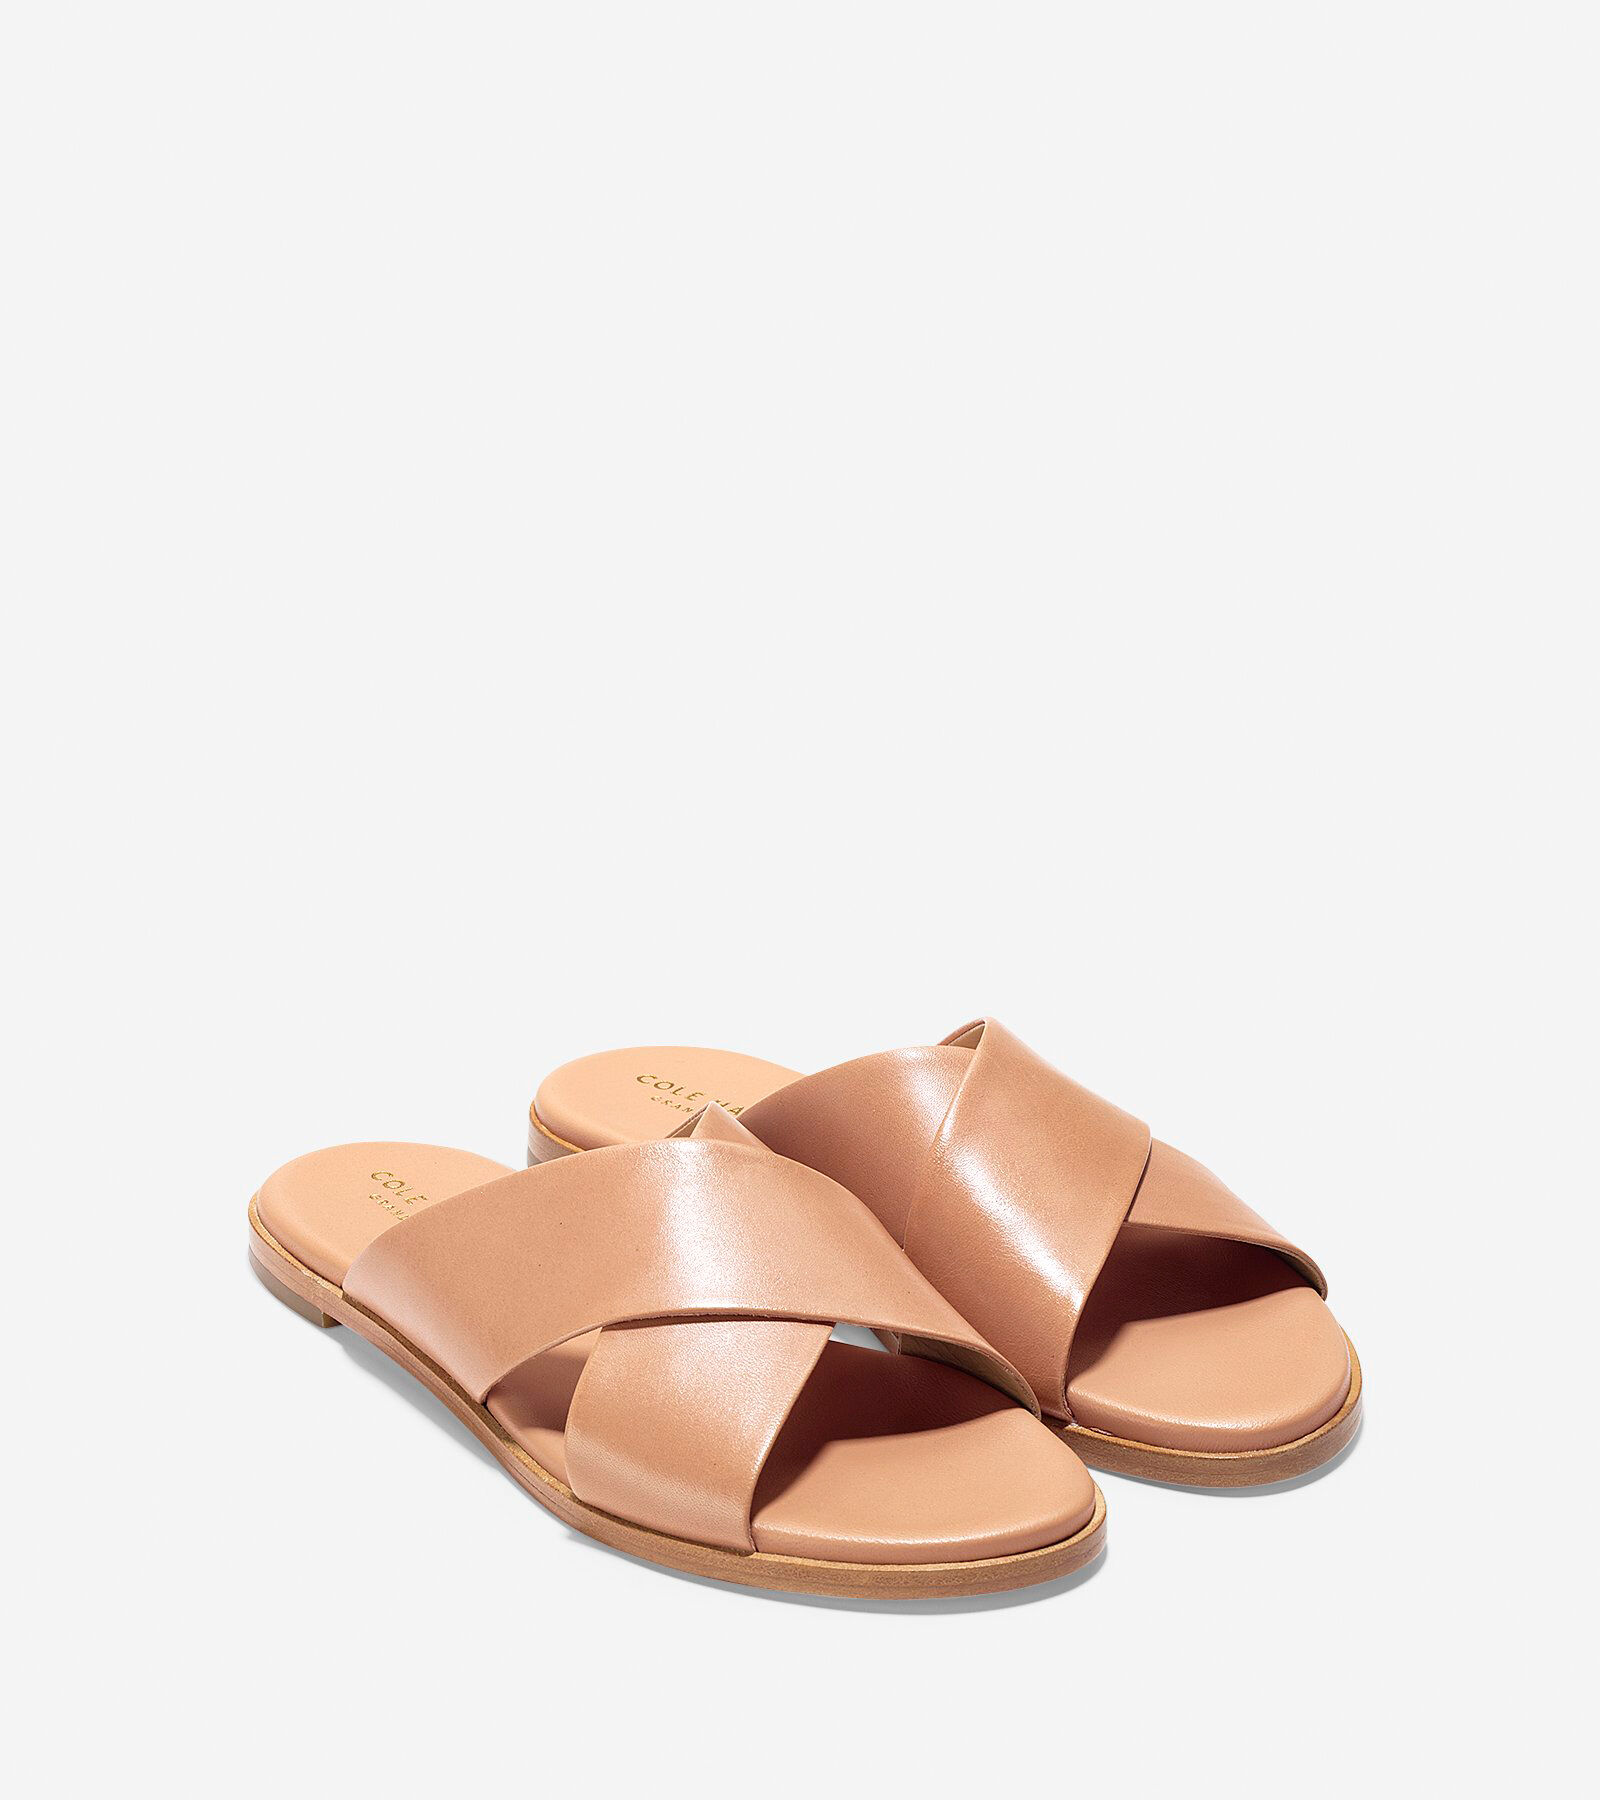 Cole Haan Anica Leather Slides 0wfihAqOY